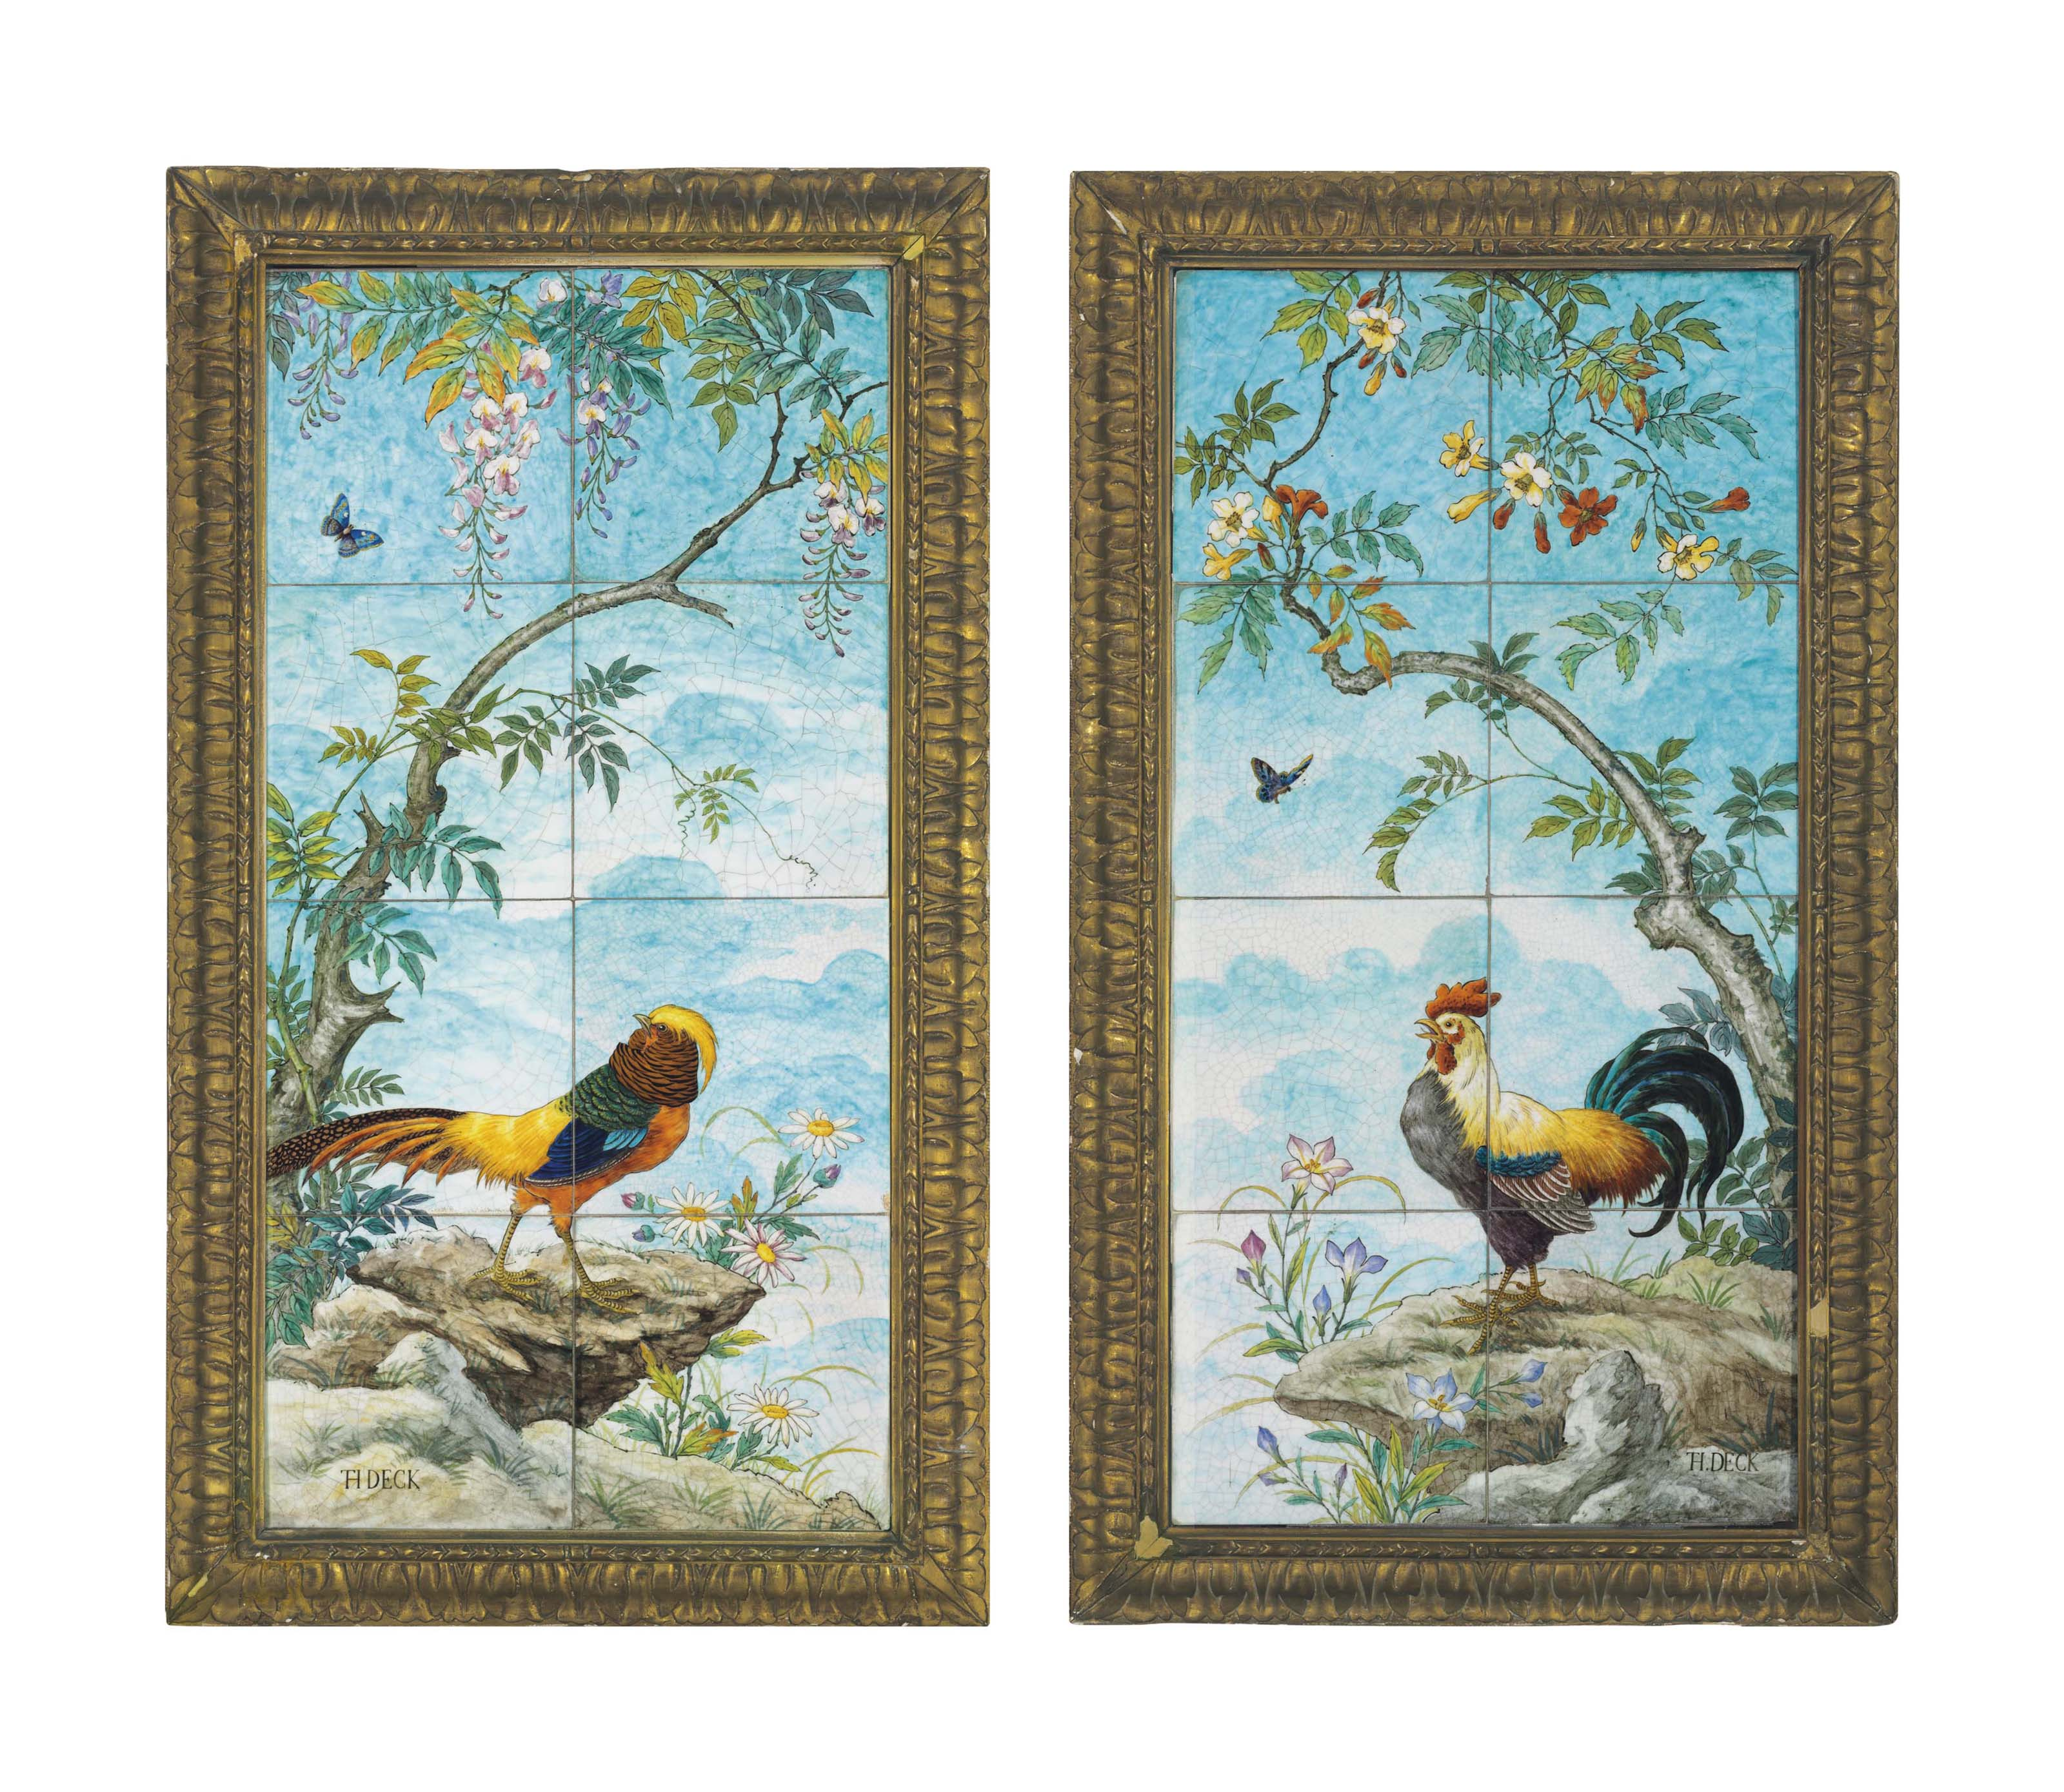 A VERY LARGE PAIR OF THEODORE DECK FAIENCE EIGHT-TILE WALL PANELS